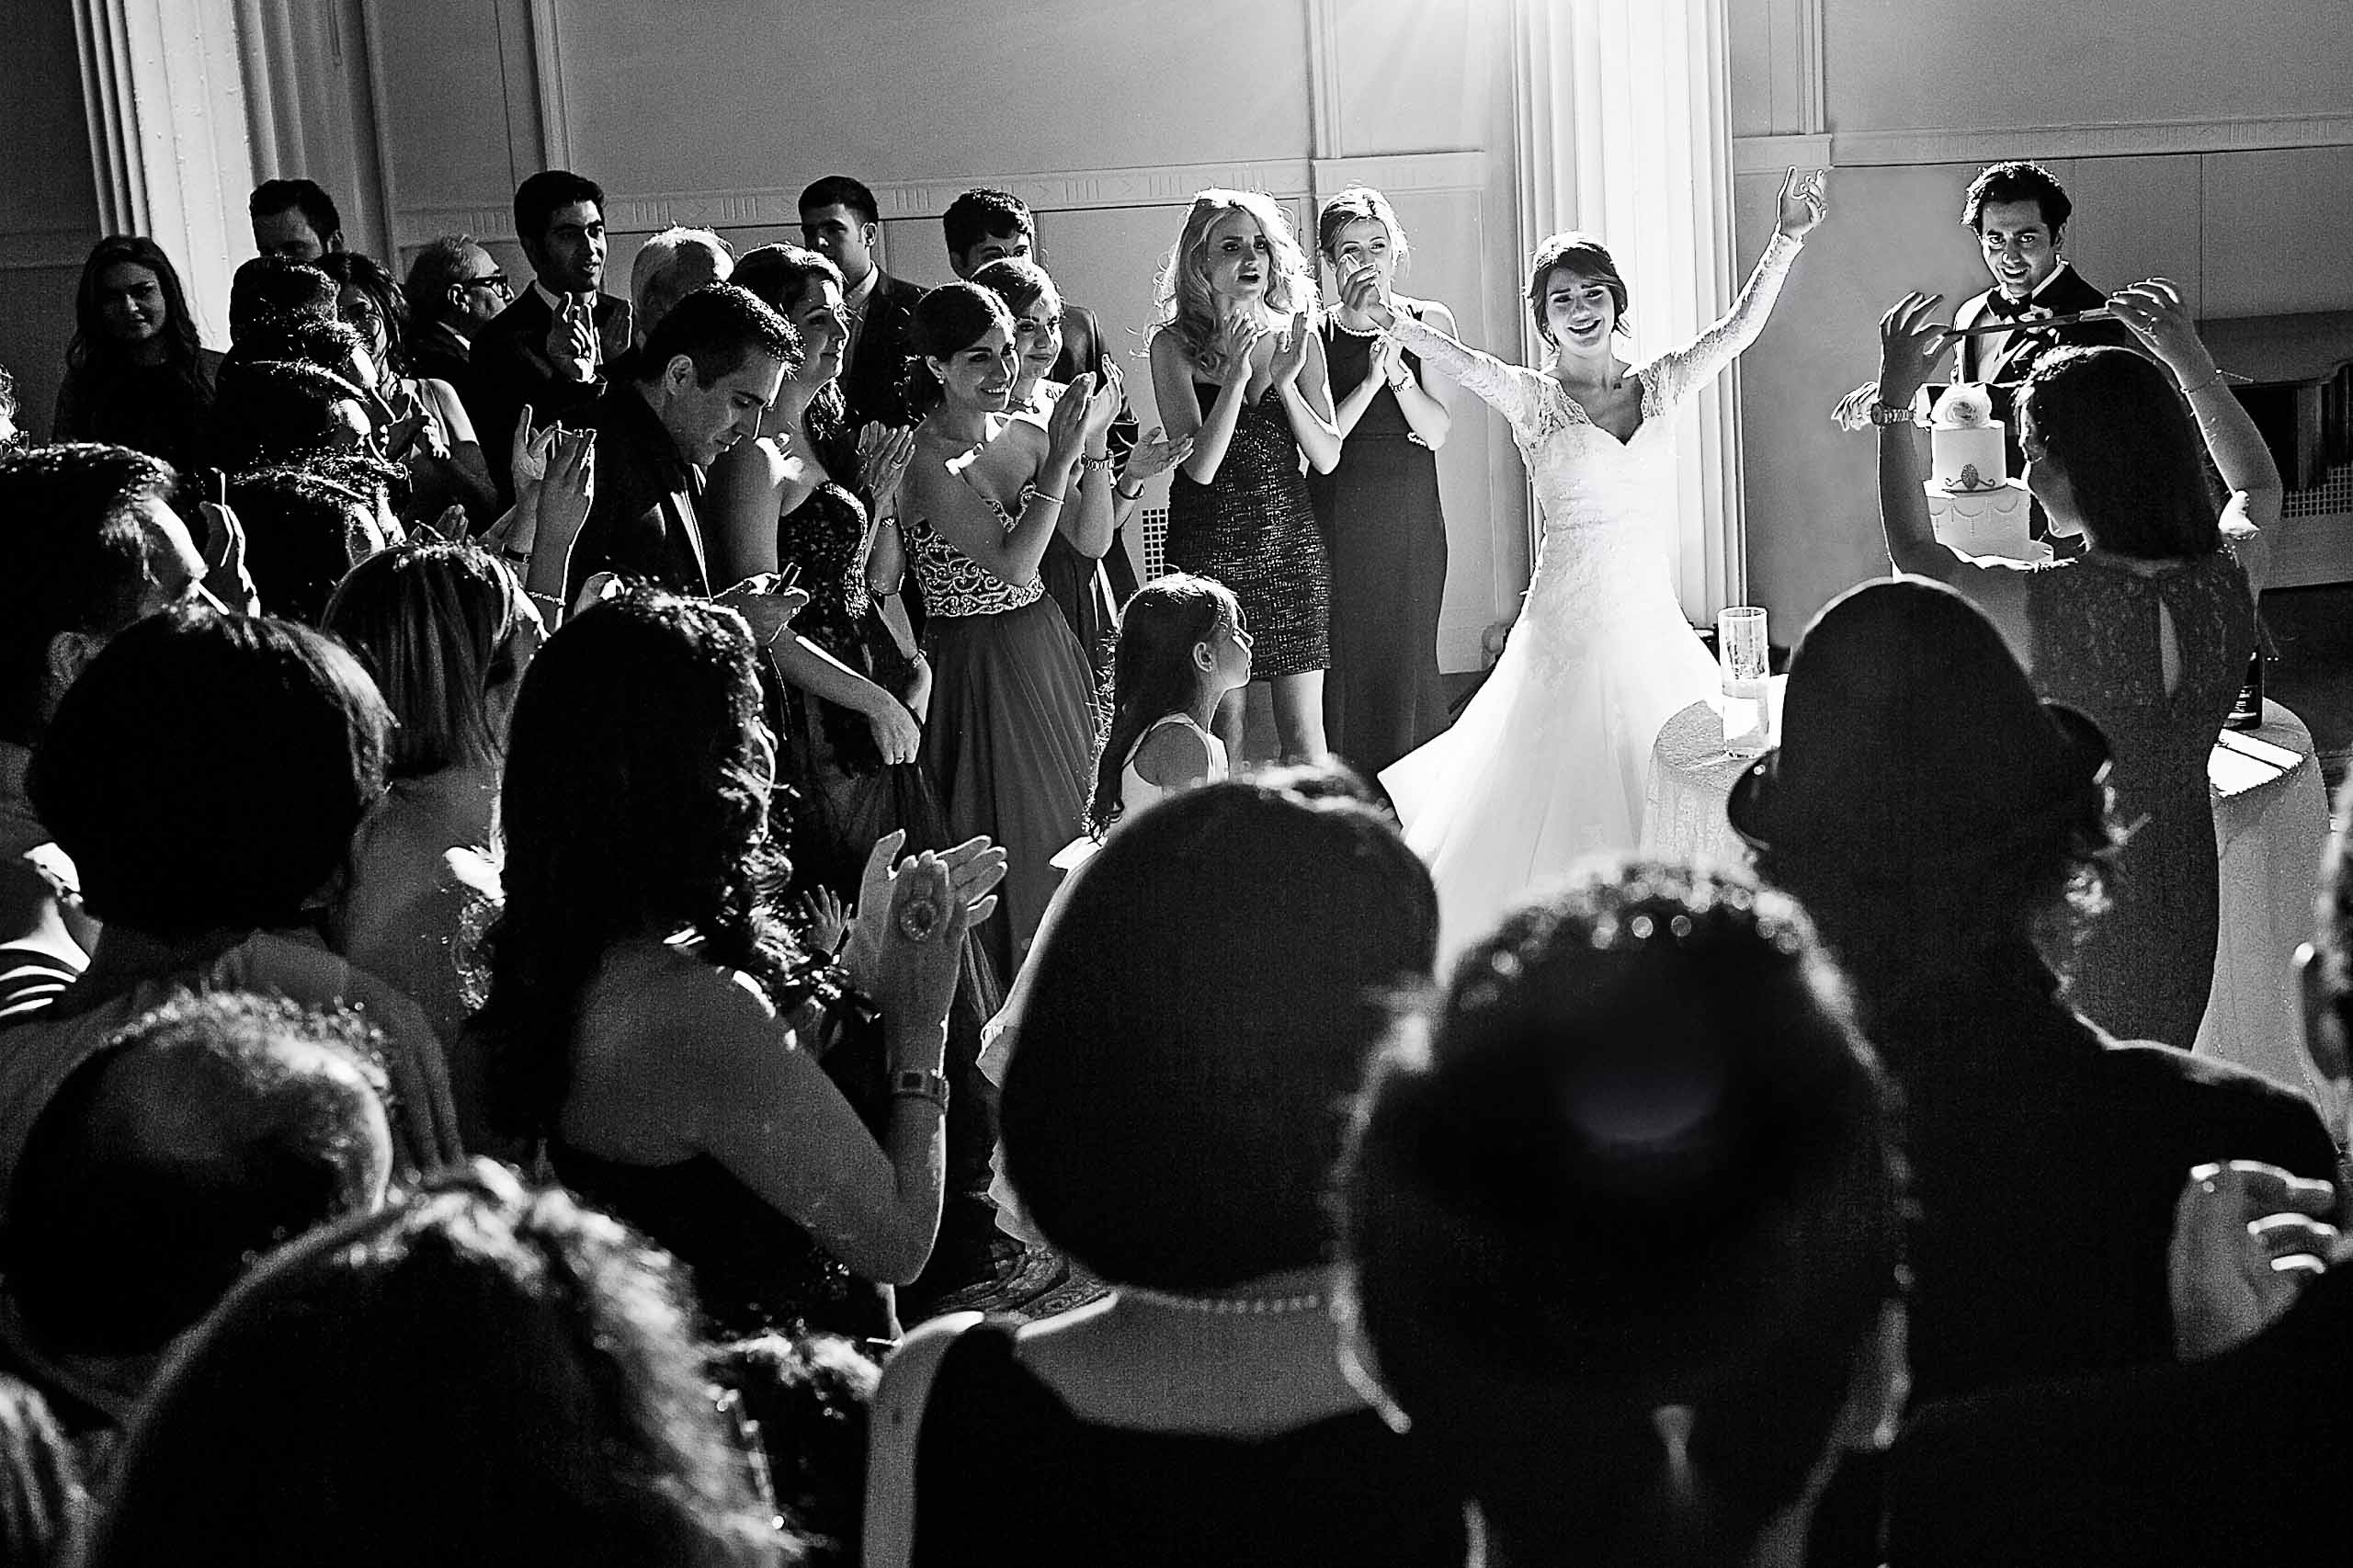 A bride doing a Persian knife dance near the cake during a Portland Persian wedding at the Portland Art Museum